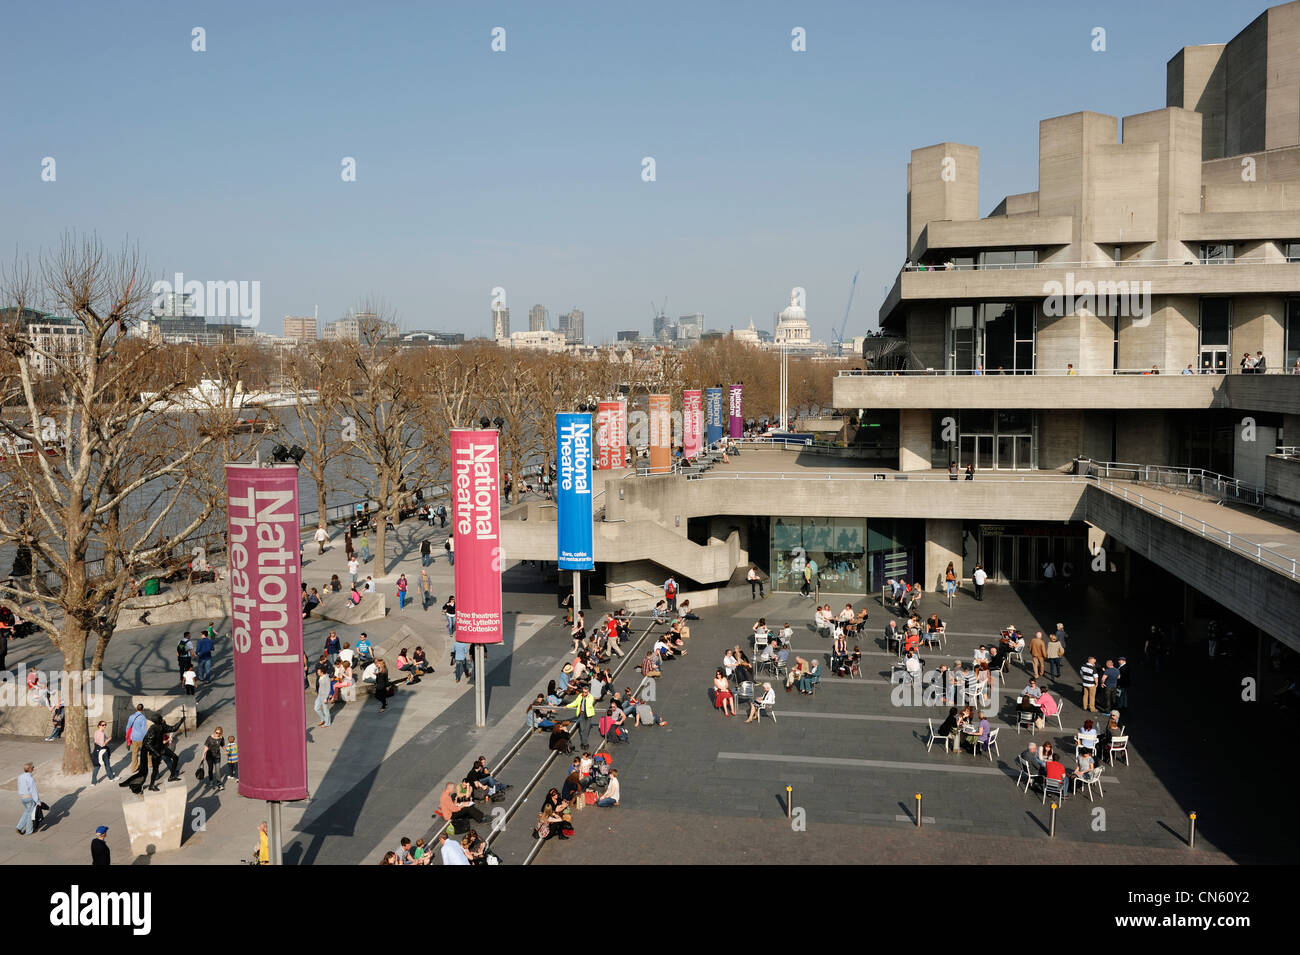 The National Theatre London - Stock Image